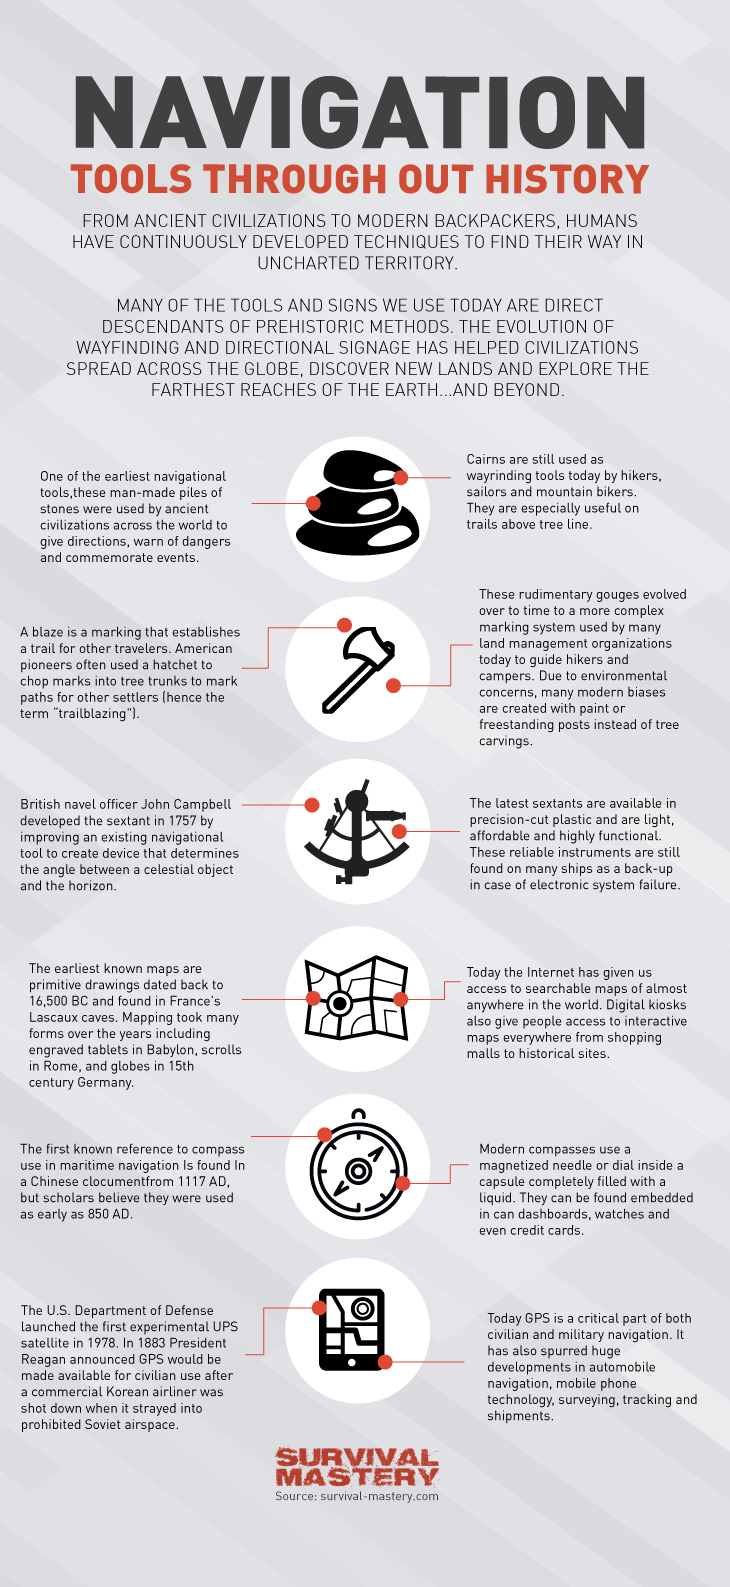 Navigation tools through out history infographic